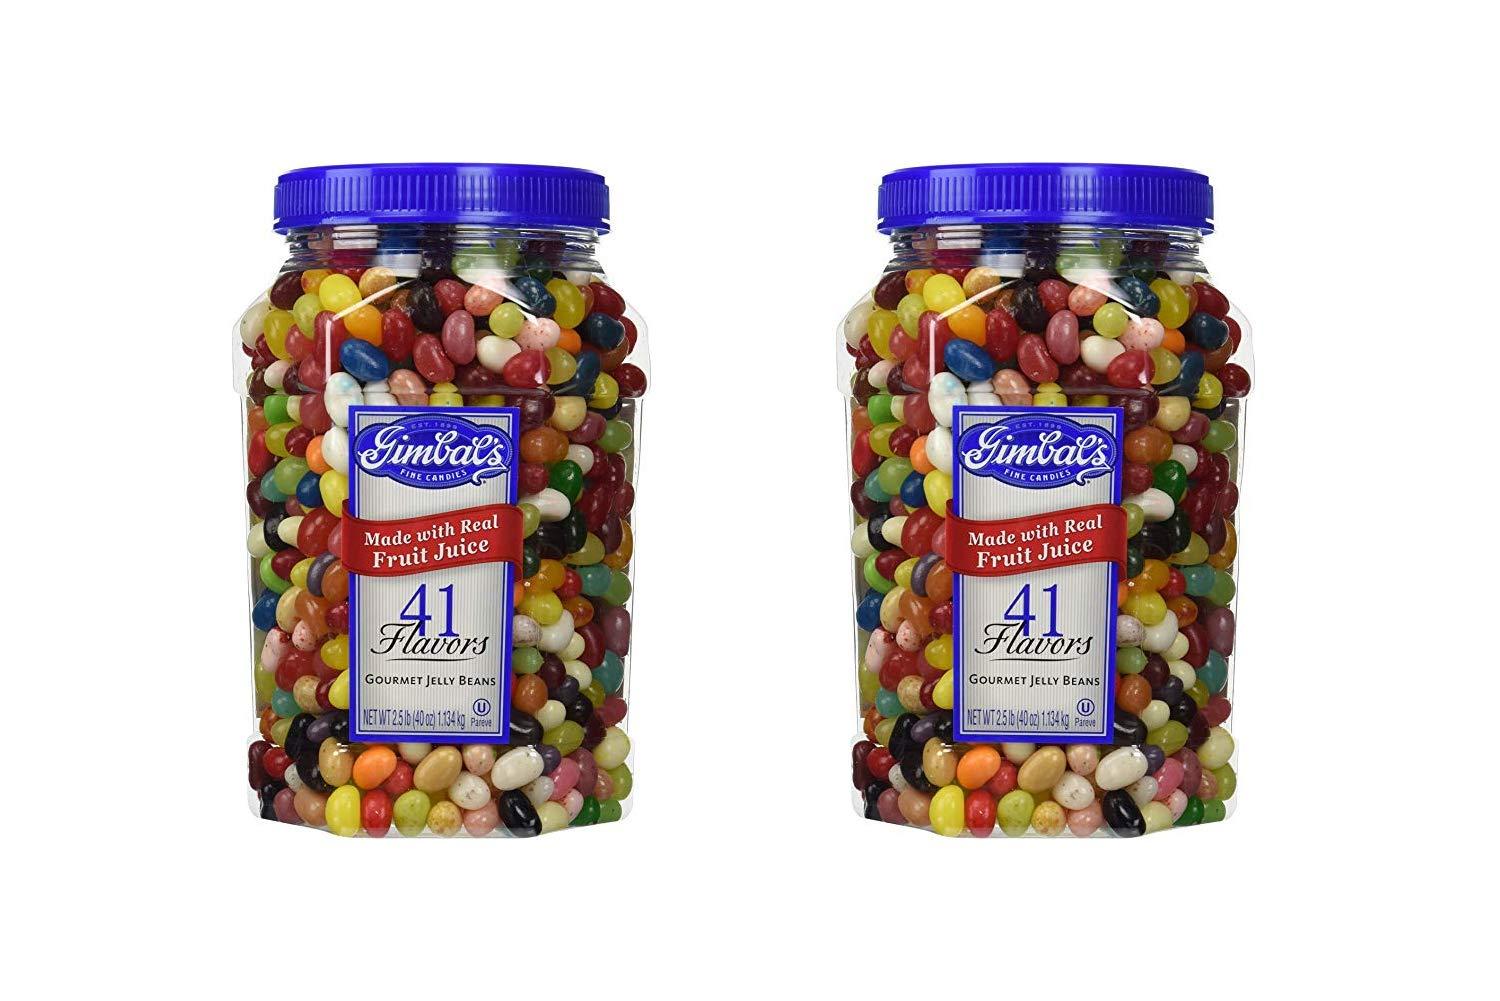 Gimbal's Fine Candies Gourmet Jelly Beans, 41 Flavors, 40-Ounce Jar (2 Pack)